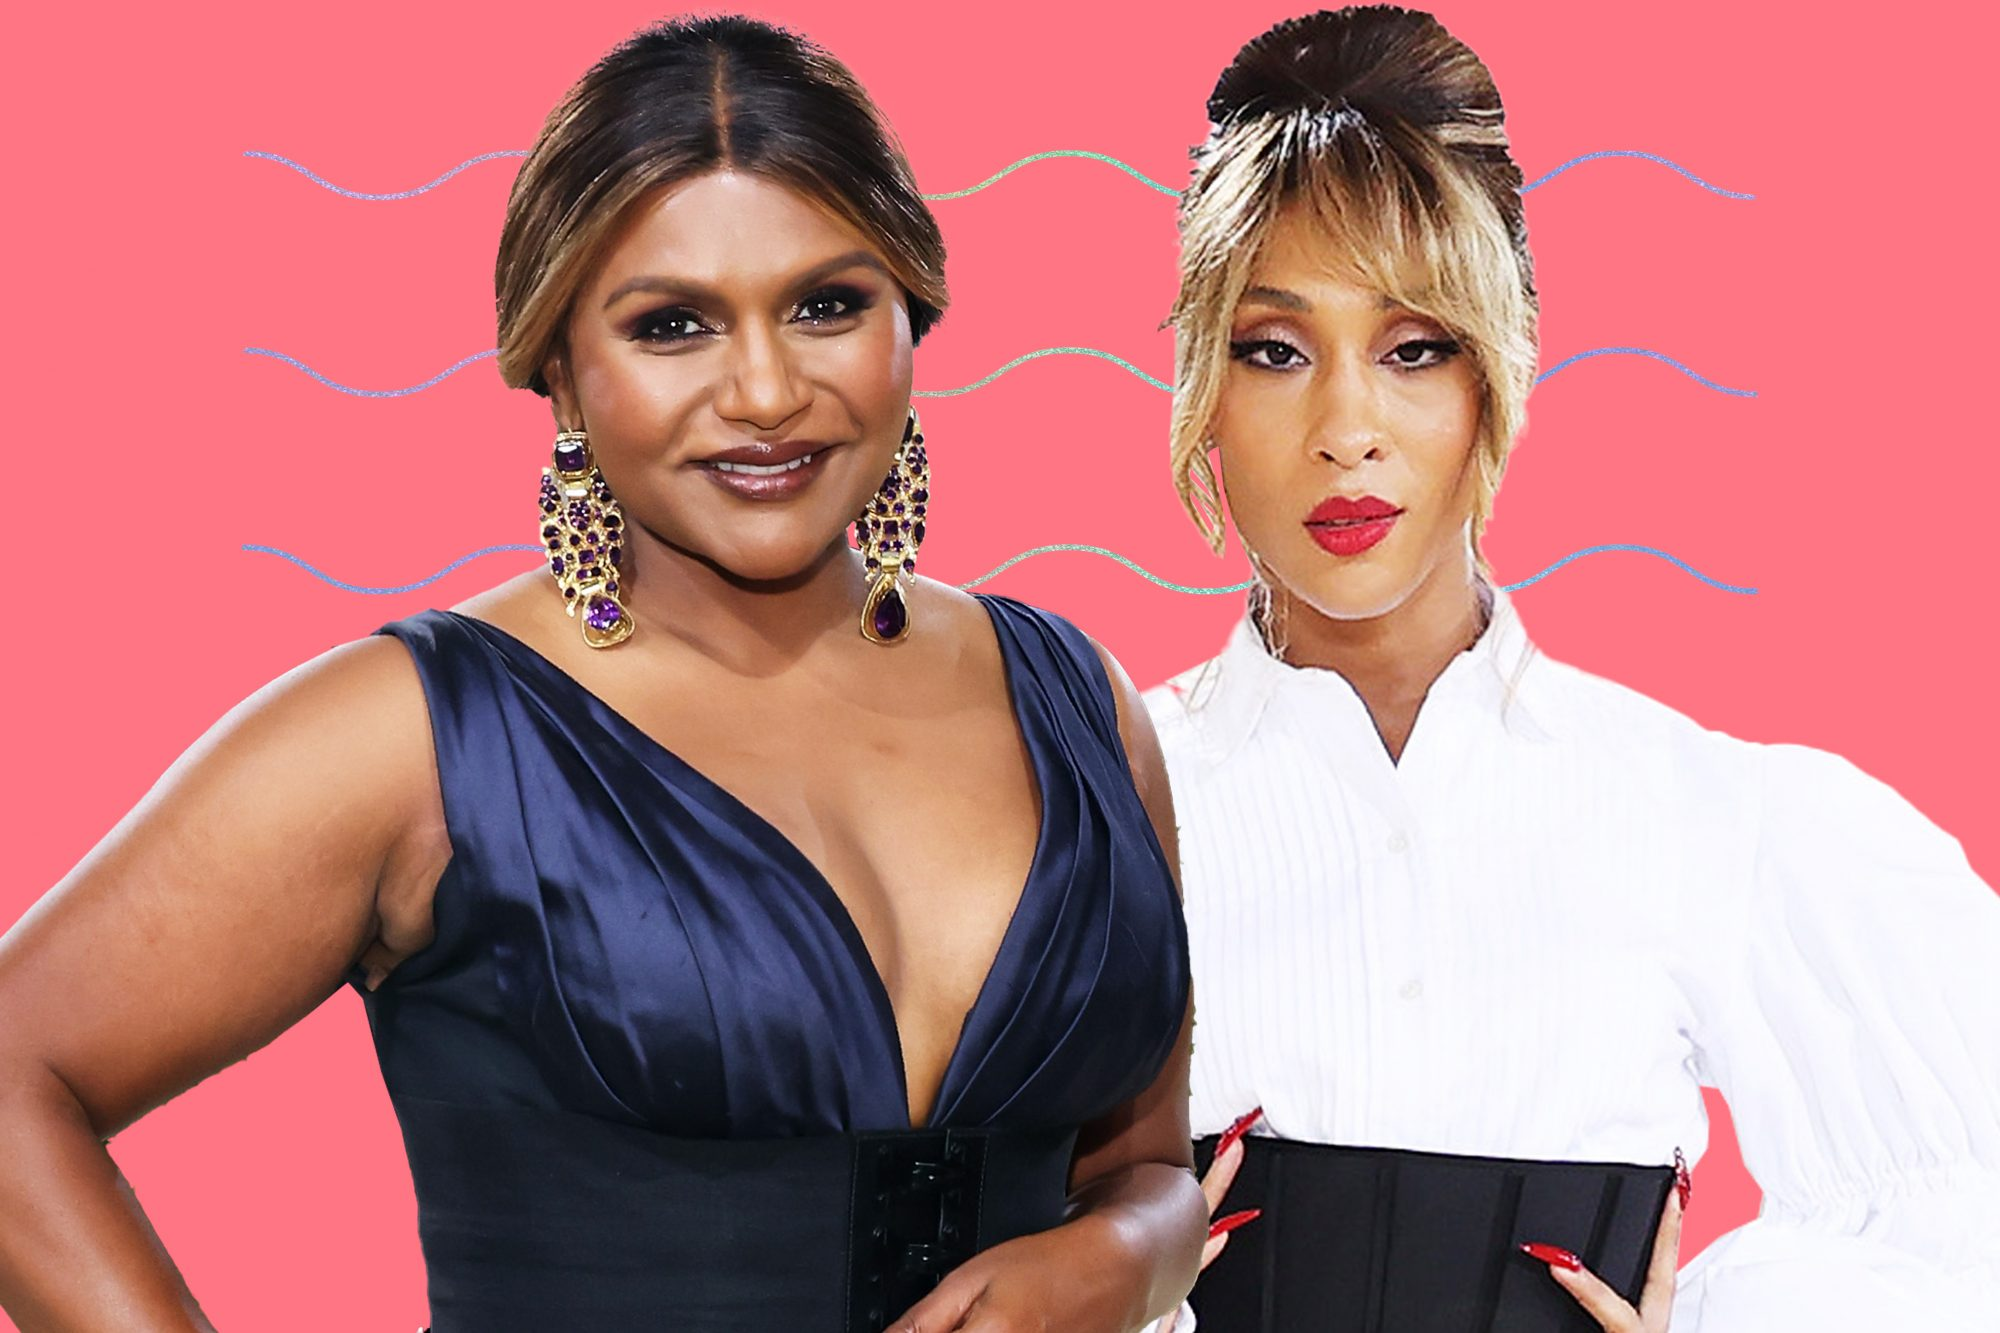 Mindy-Kaling-Mj-Rodriguez-and-Other-Celebs-Wore-This-Anti-Aging-Moisturizer-For-Flawless-Skin-Met-Gala-Skin-GettyImages-1340169498-1340215951